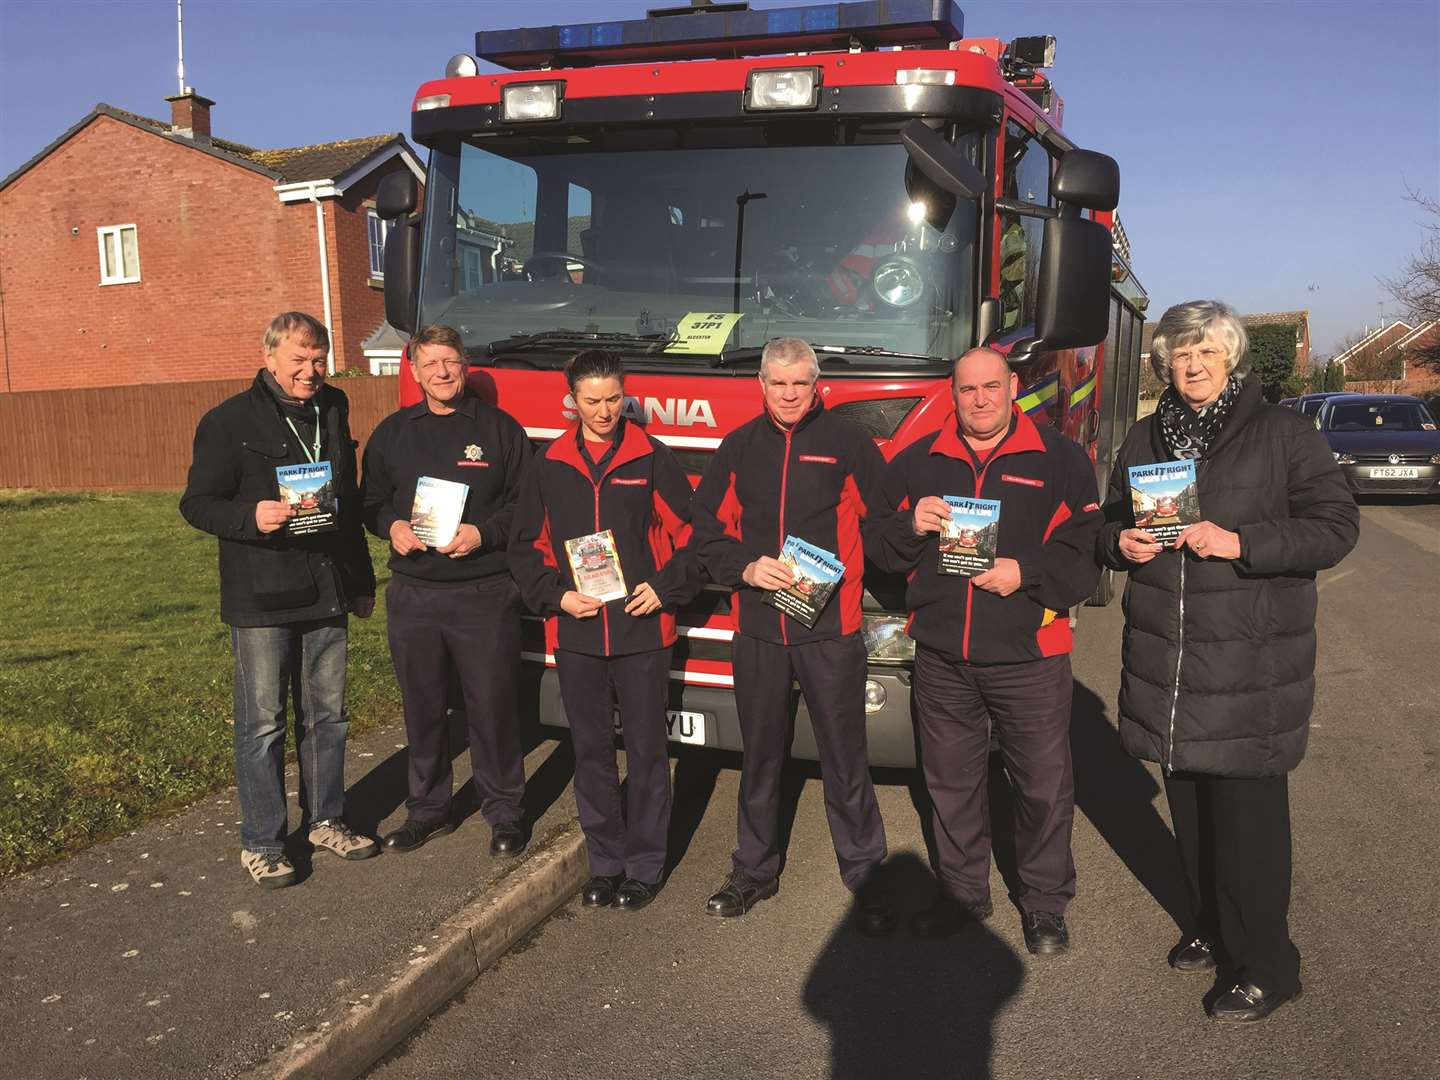 Park it Right Campaign: From left, Cllr Mark Cargill, with Warwickshire Fire and Rescue Service fire fighters, Adrian Young, Donna McGettigan, Peter Vale, crew commander Brian Crow and Cllr Susan Adams pictured in Alcester.Photo submitted